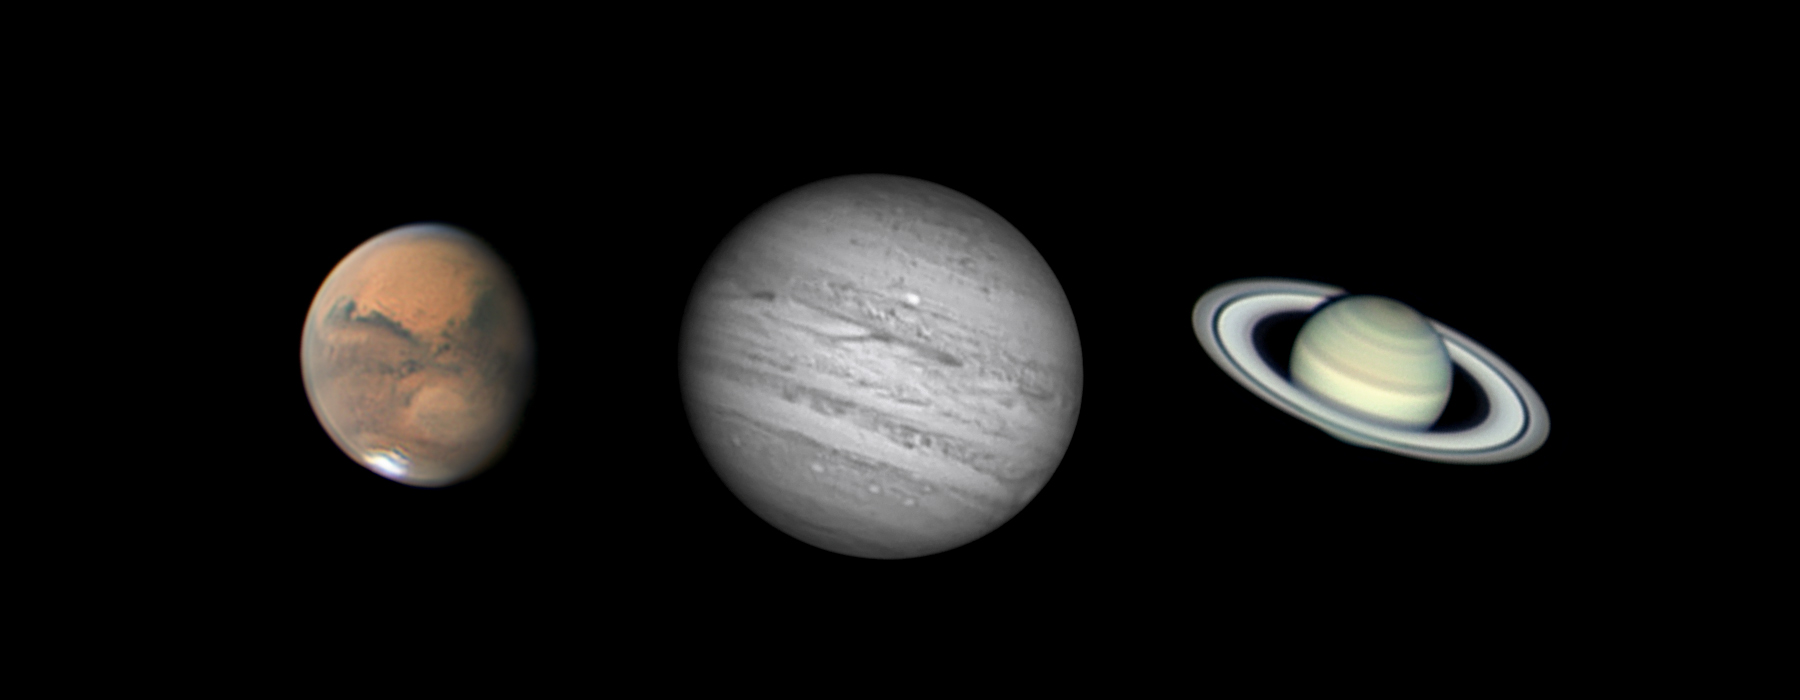 Planets of August 21 2020.jpg